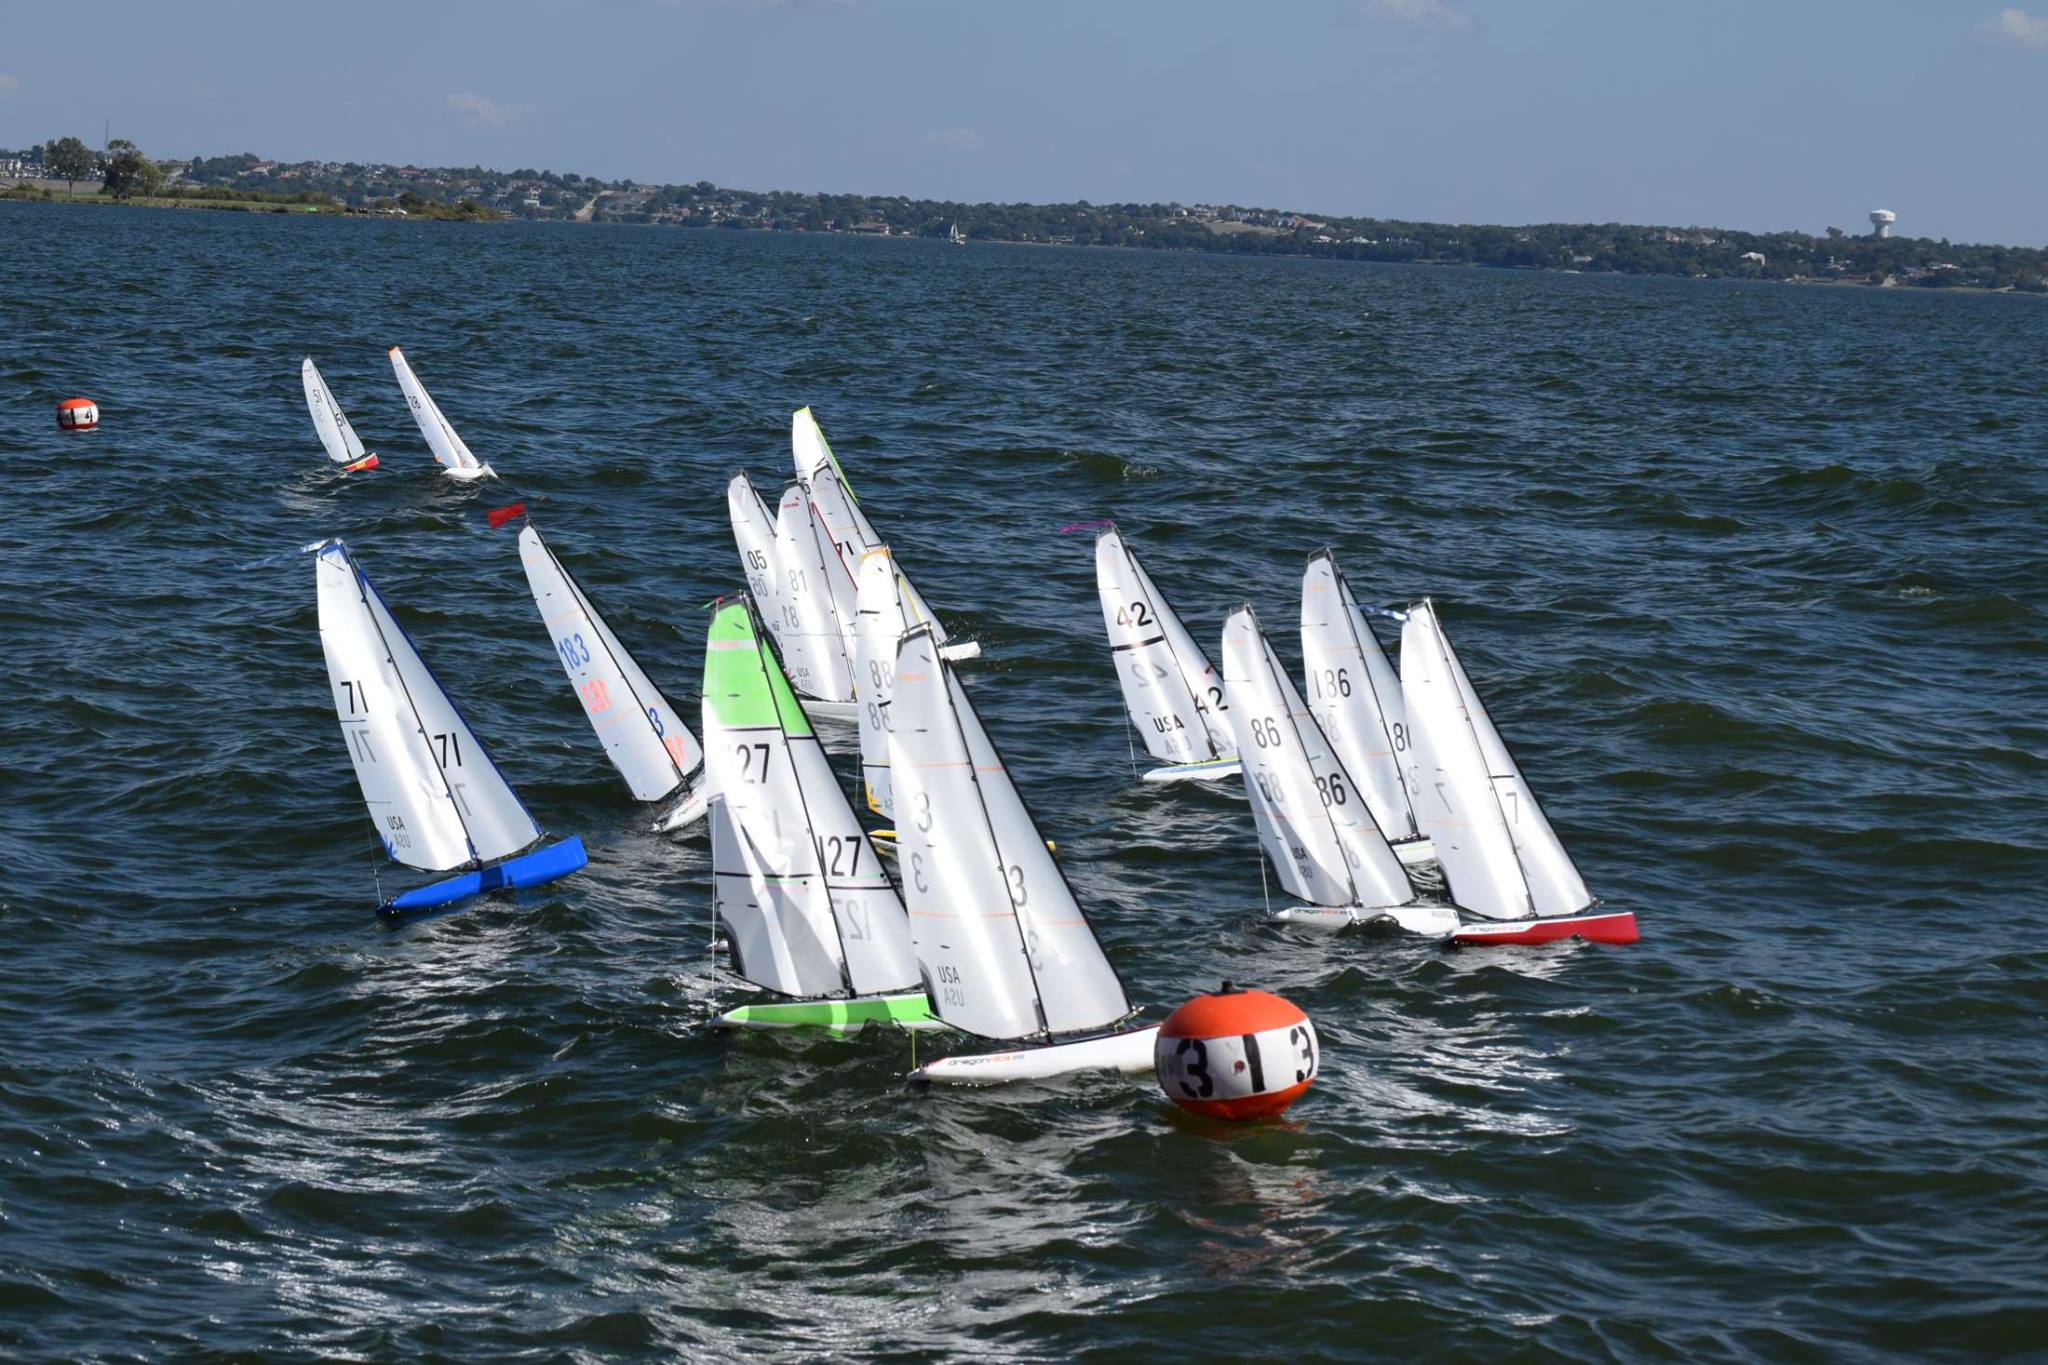 DragonFlite 95 USA Class Owners Association – Portal for the